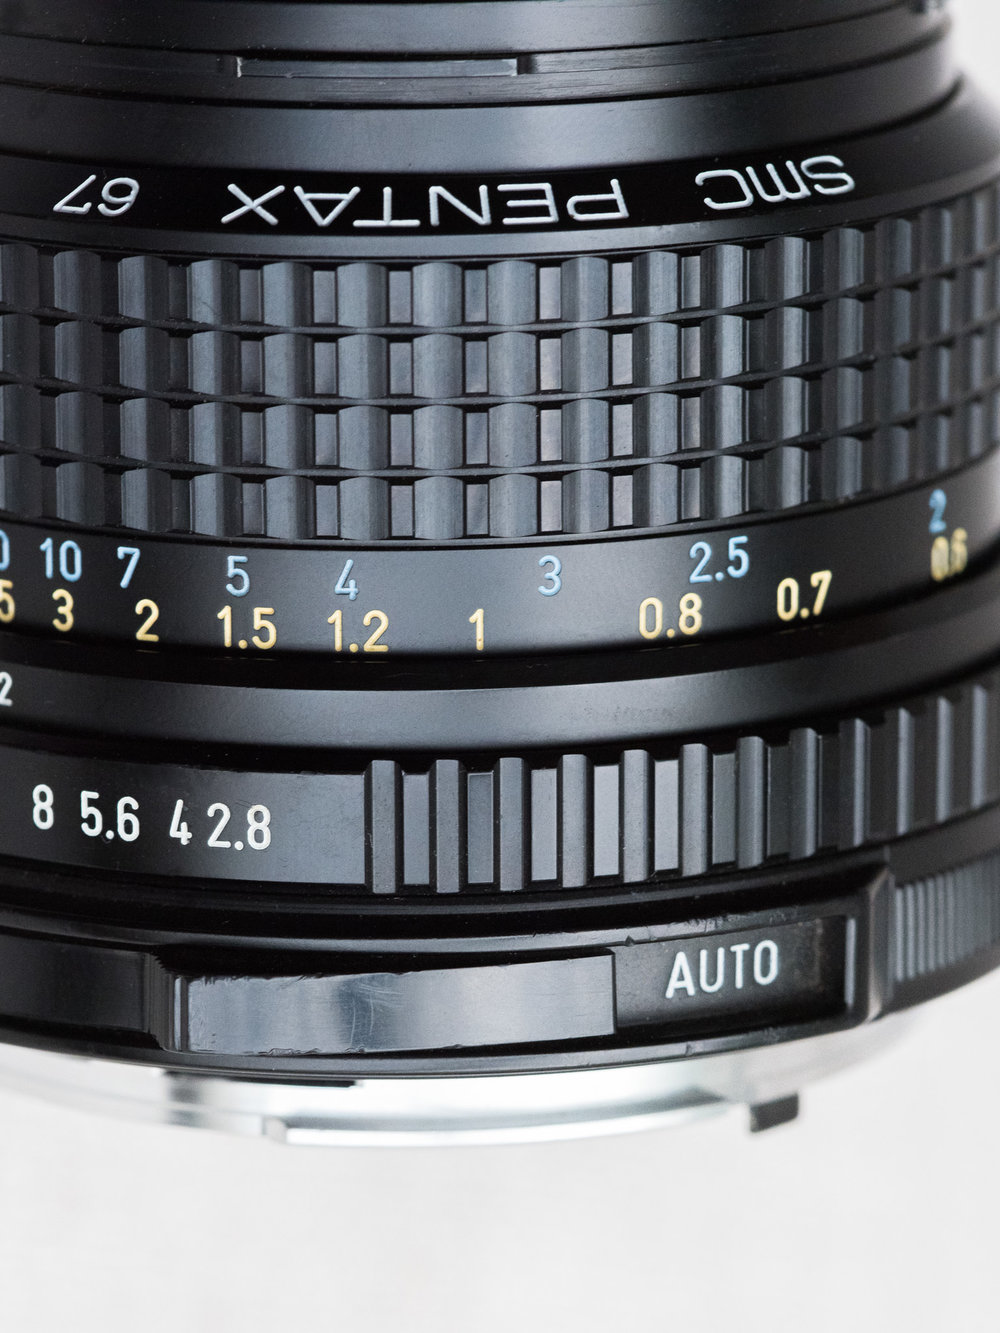 Closeup image of Pentax SMC 75mm f/2.8 AL Lens